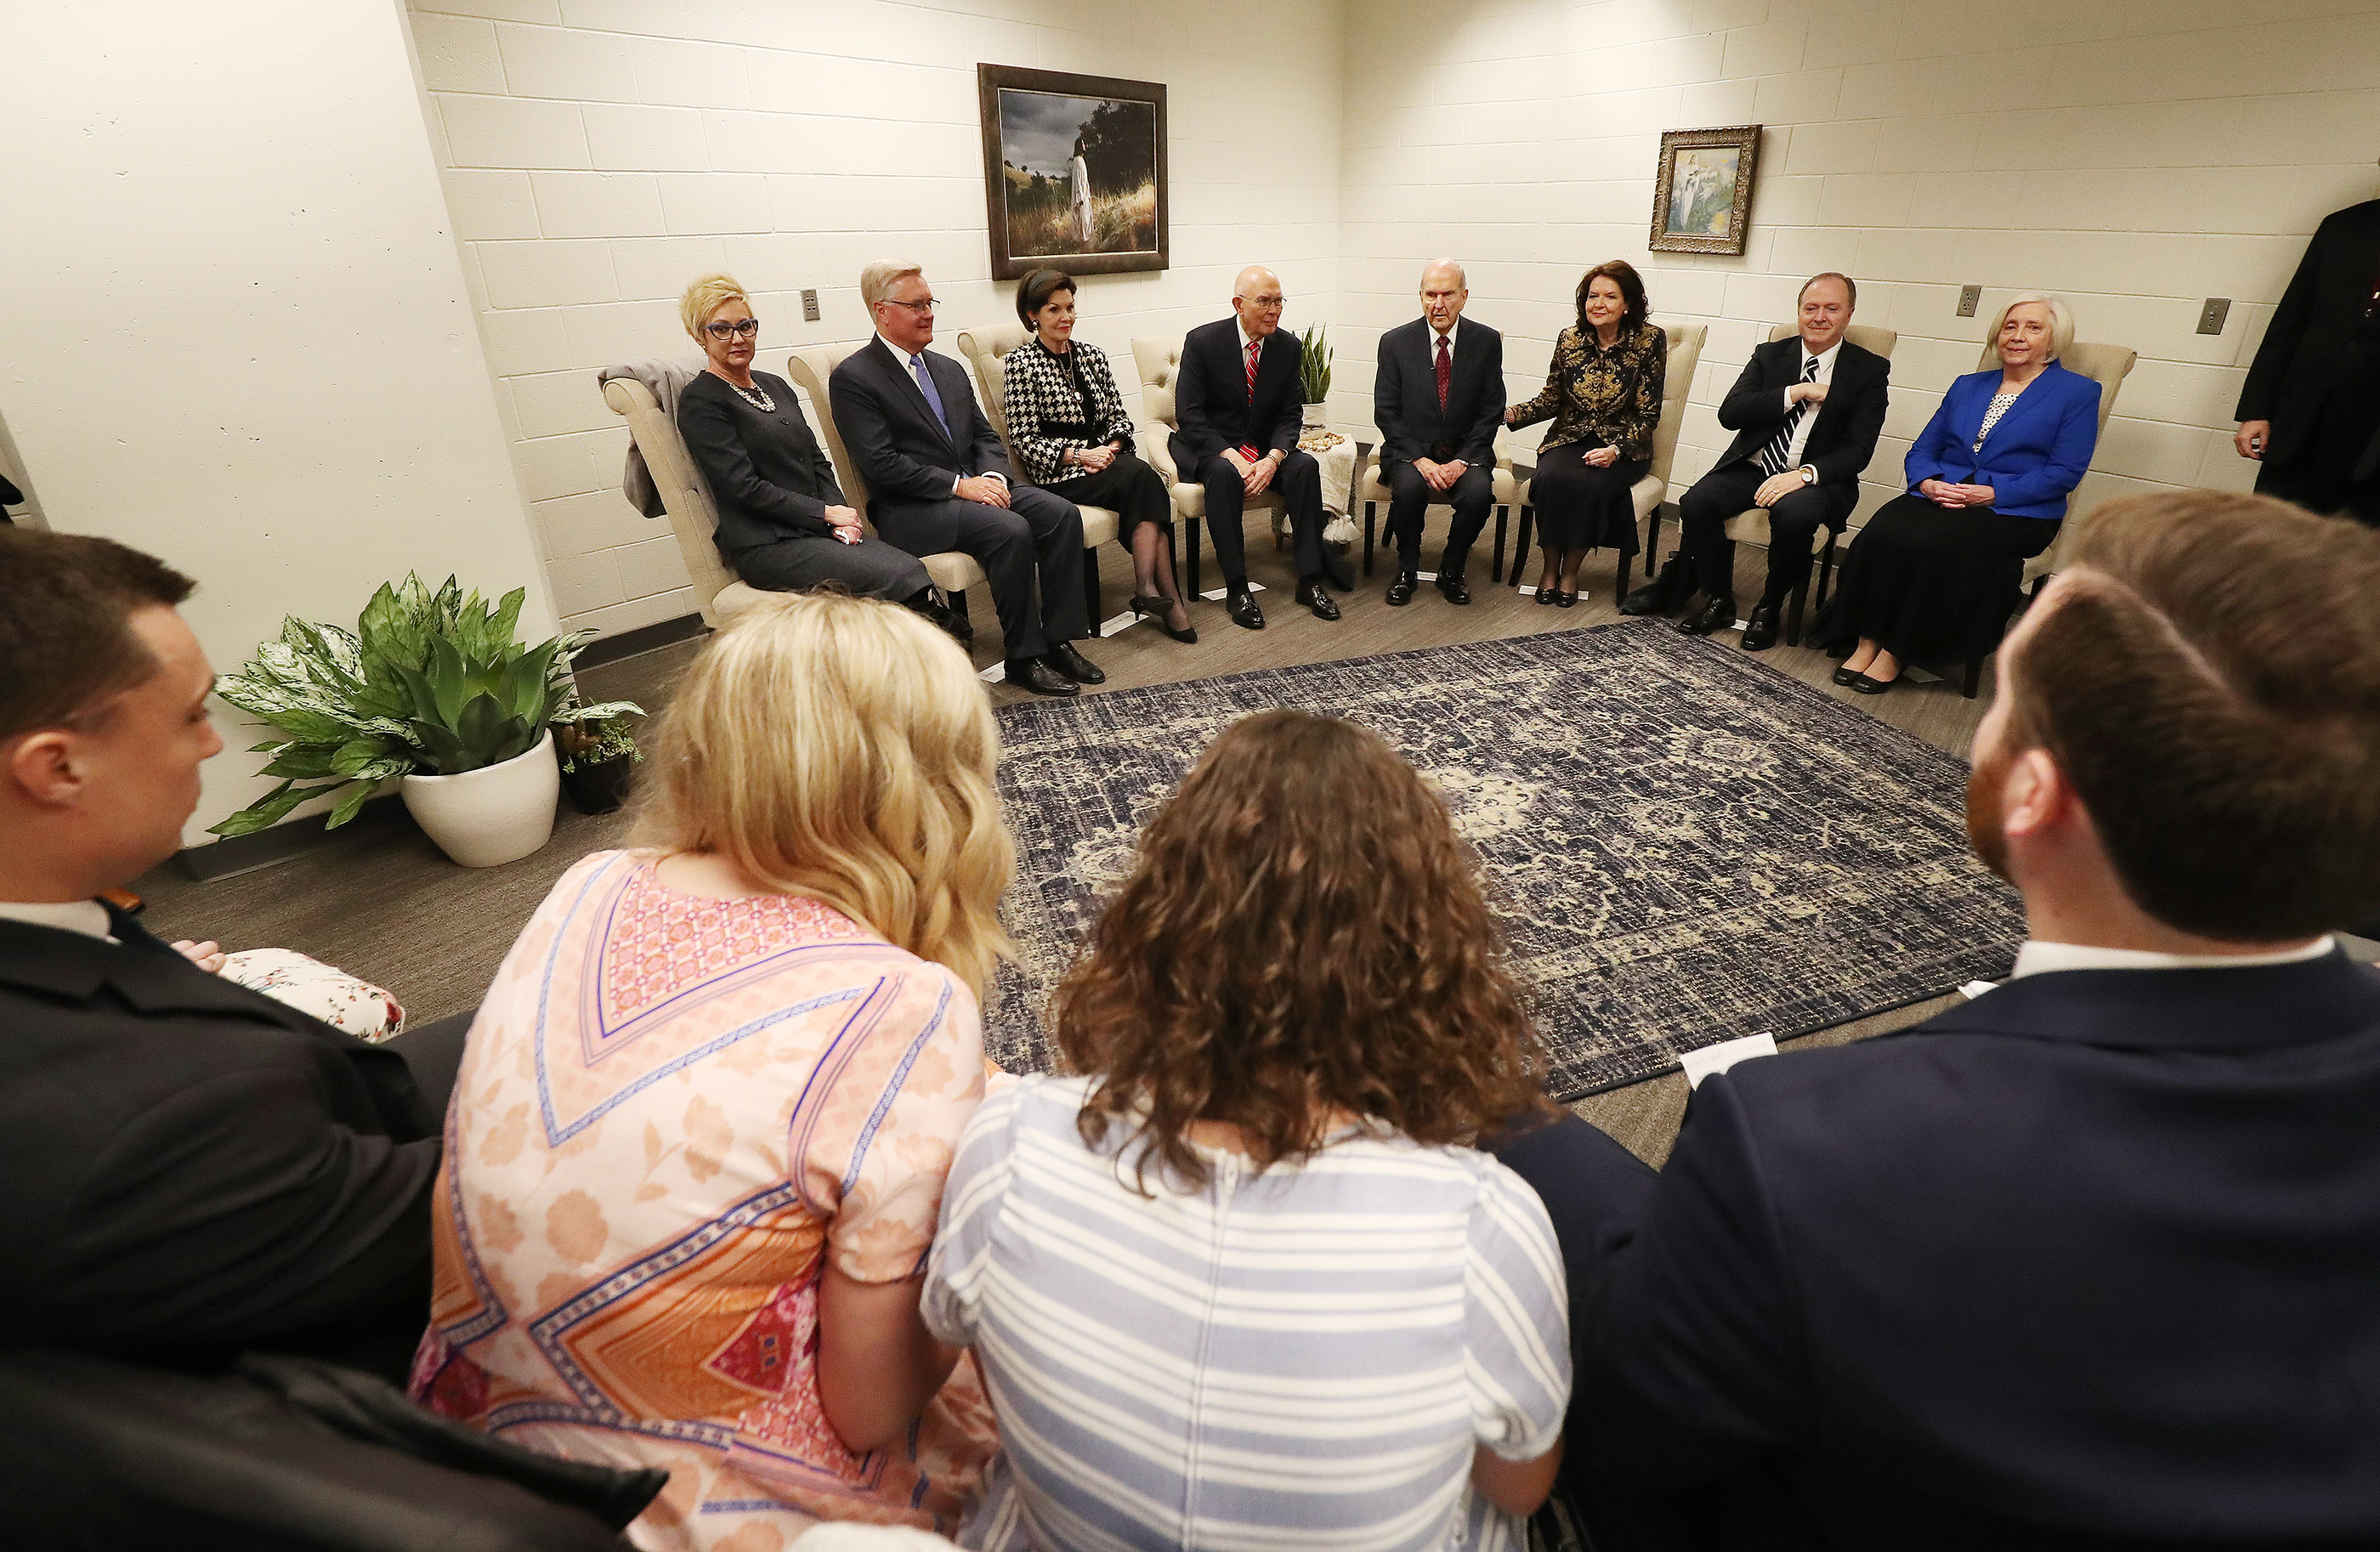 President Russell M. Nelson of The Church of Jesus Christ of Latter-day Saints and President Dallin H. Oaks, first counselor in the First Presidency, talk with 10 young single adults from the area prior to a devotional at the State Farm Stadium in Phoenix on Sunday, Feb. 10, 2019.